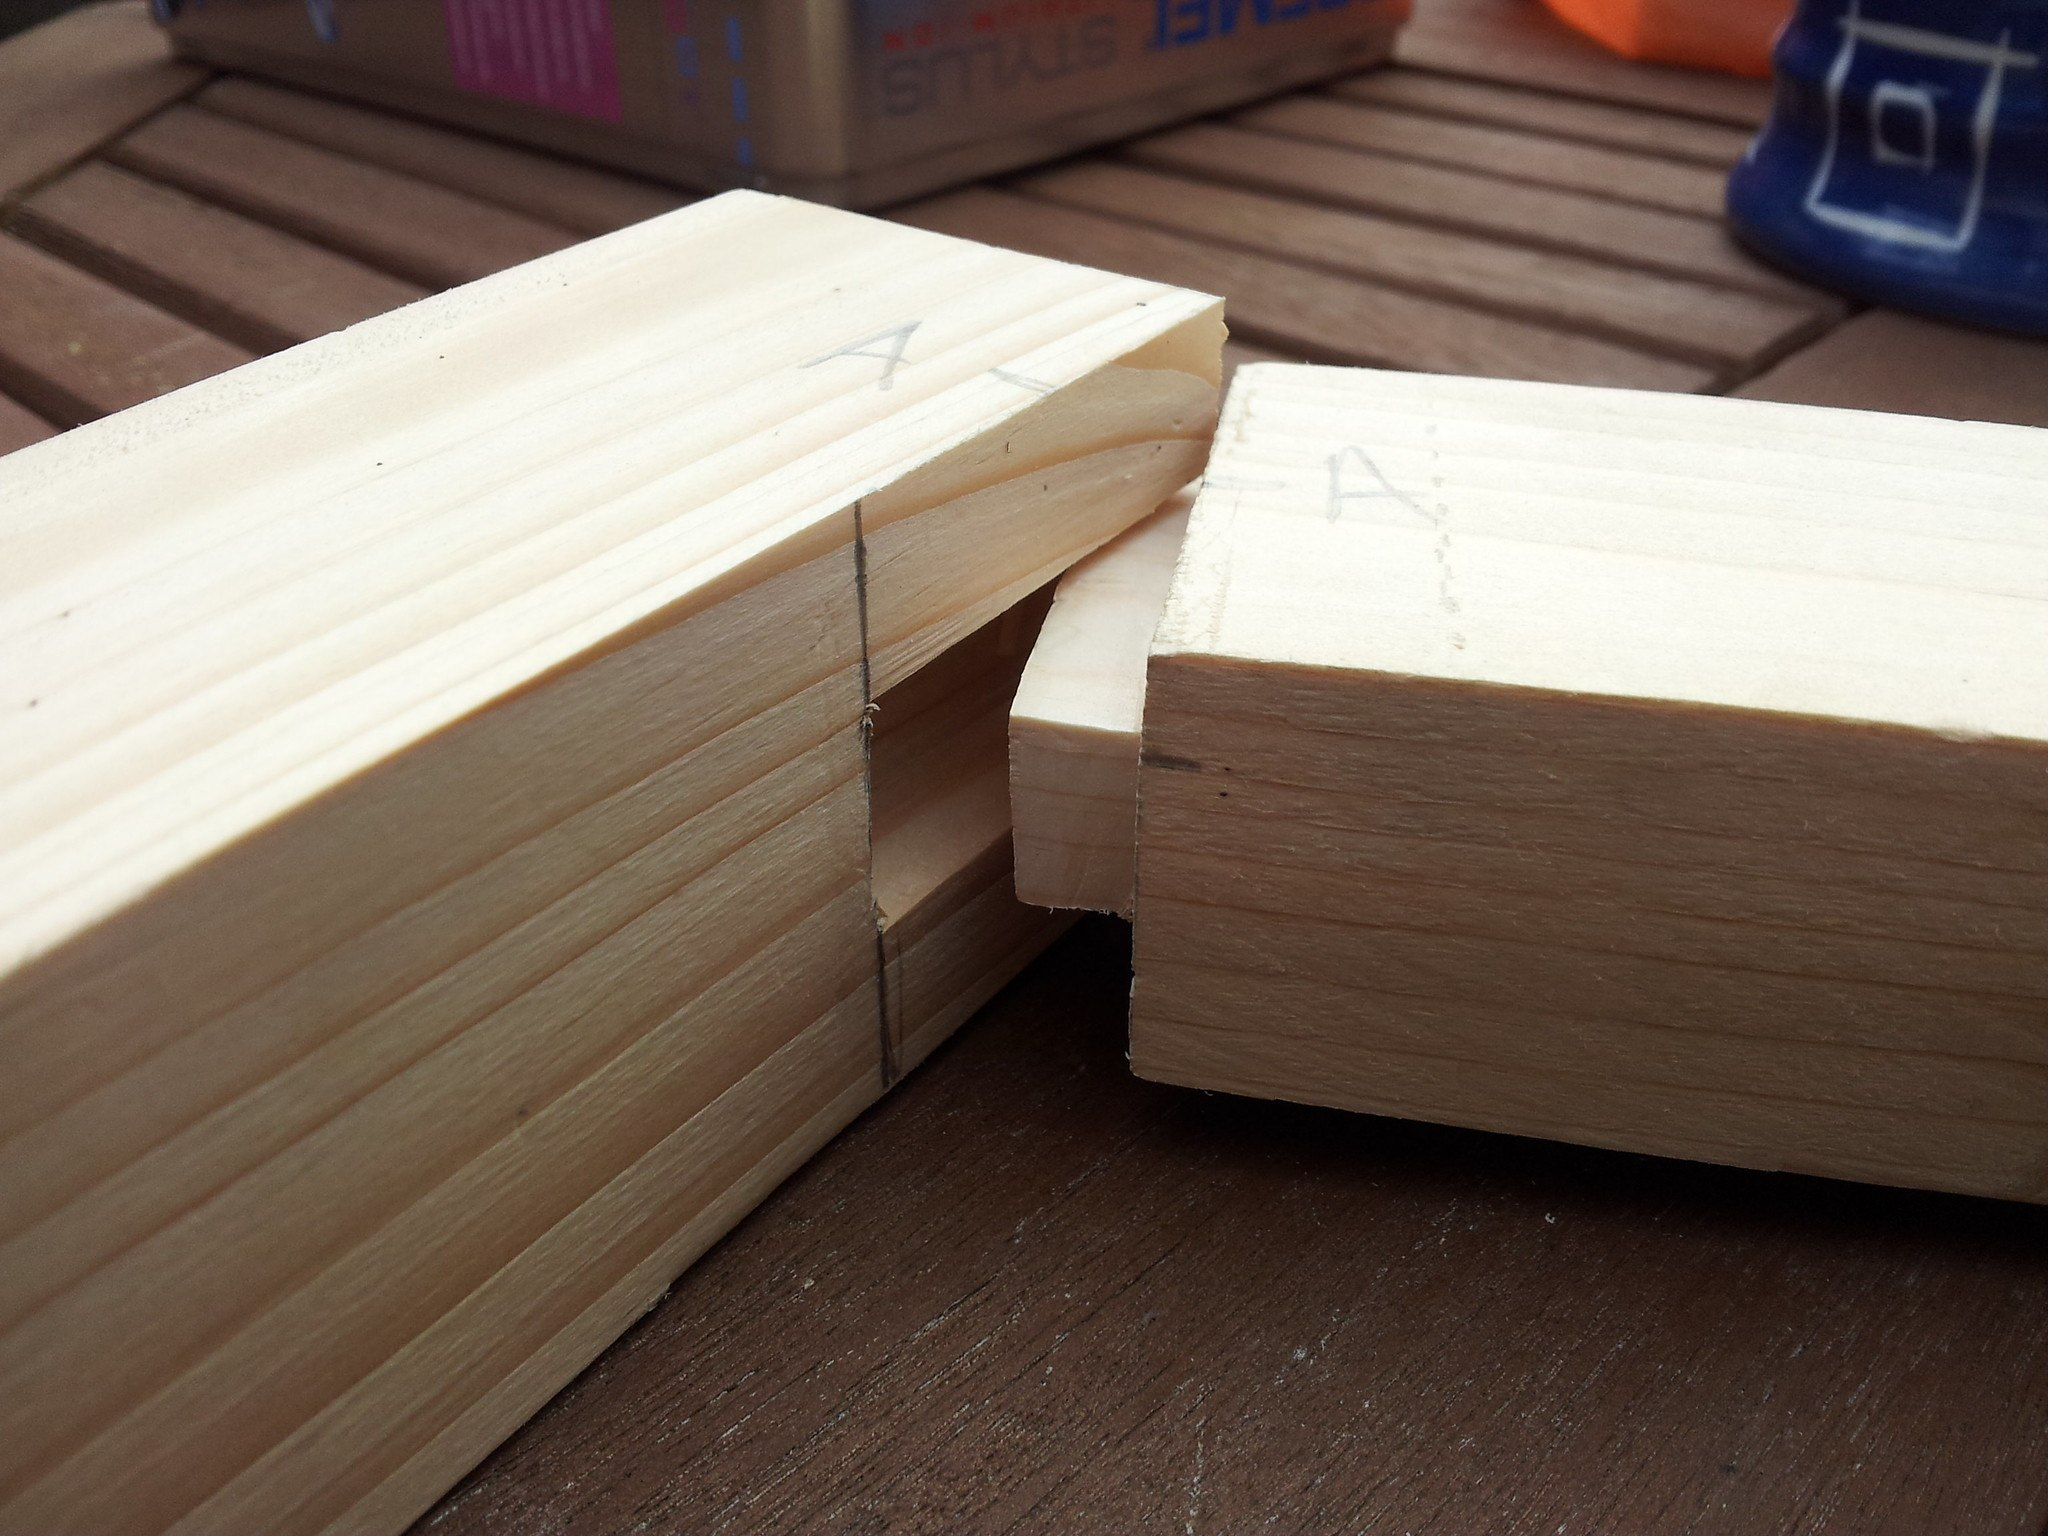 mortise, tenon, joints